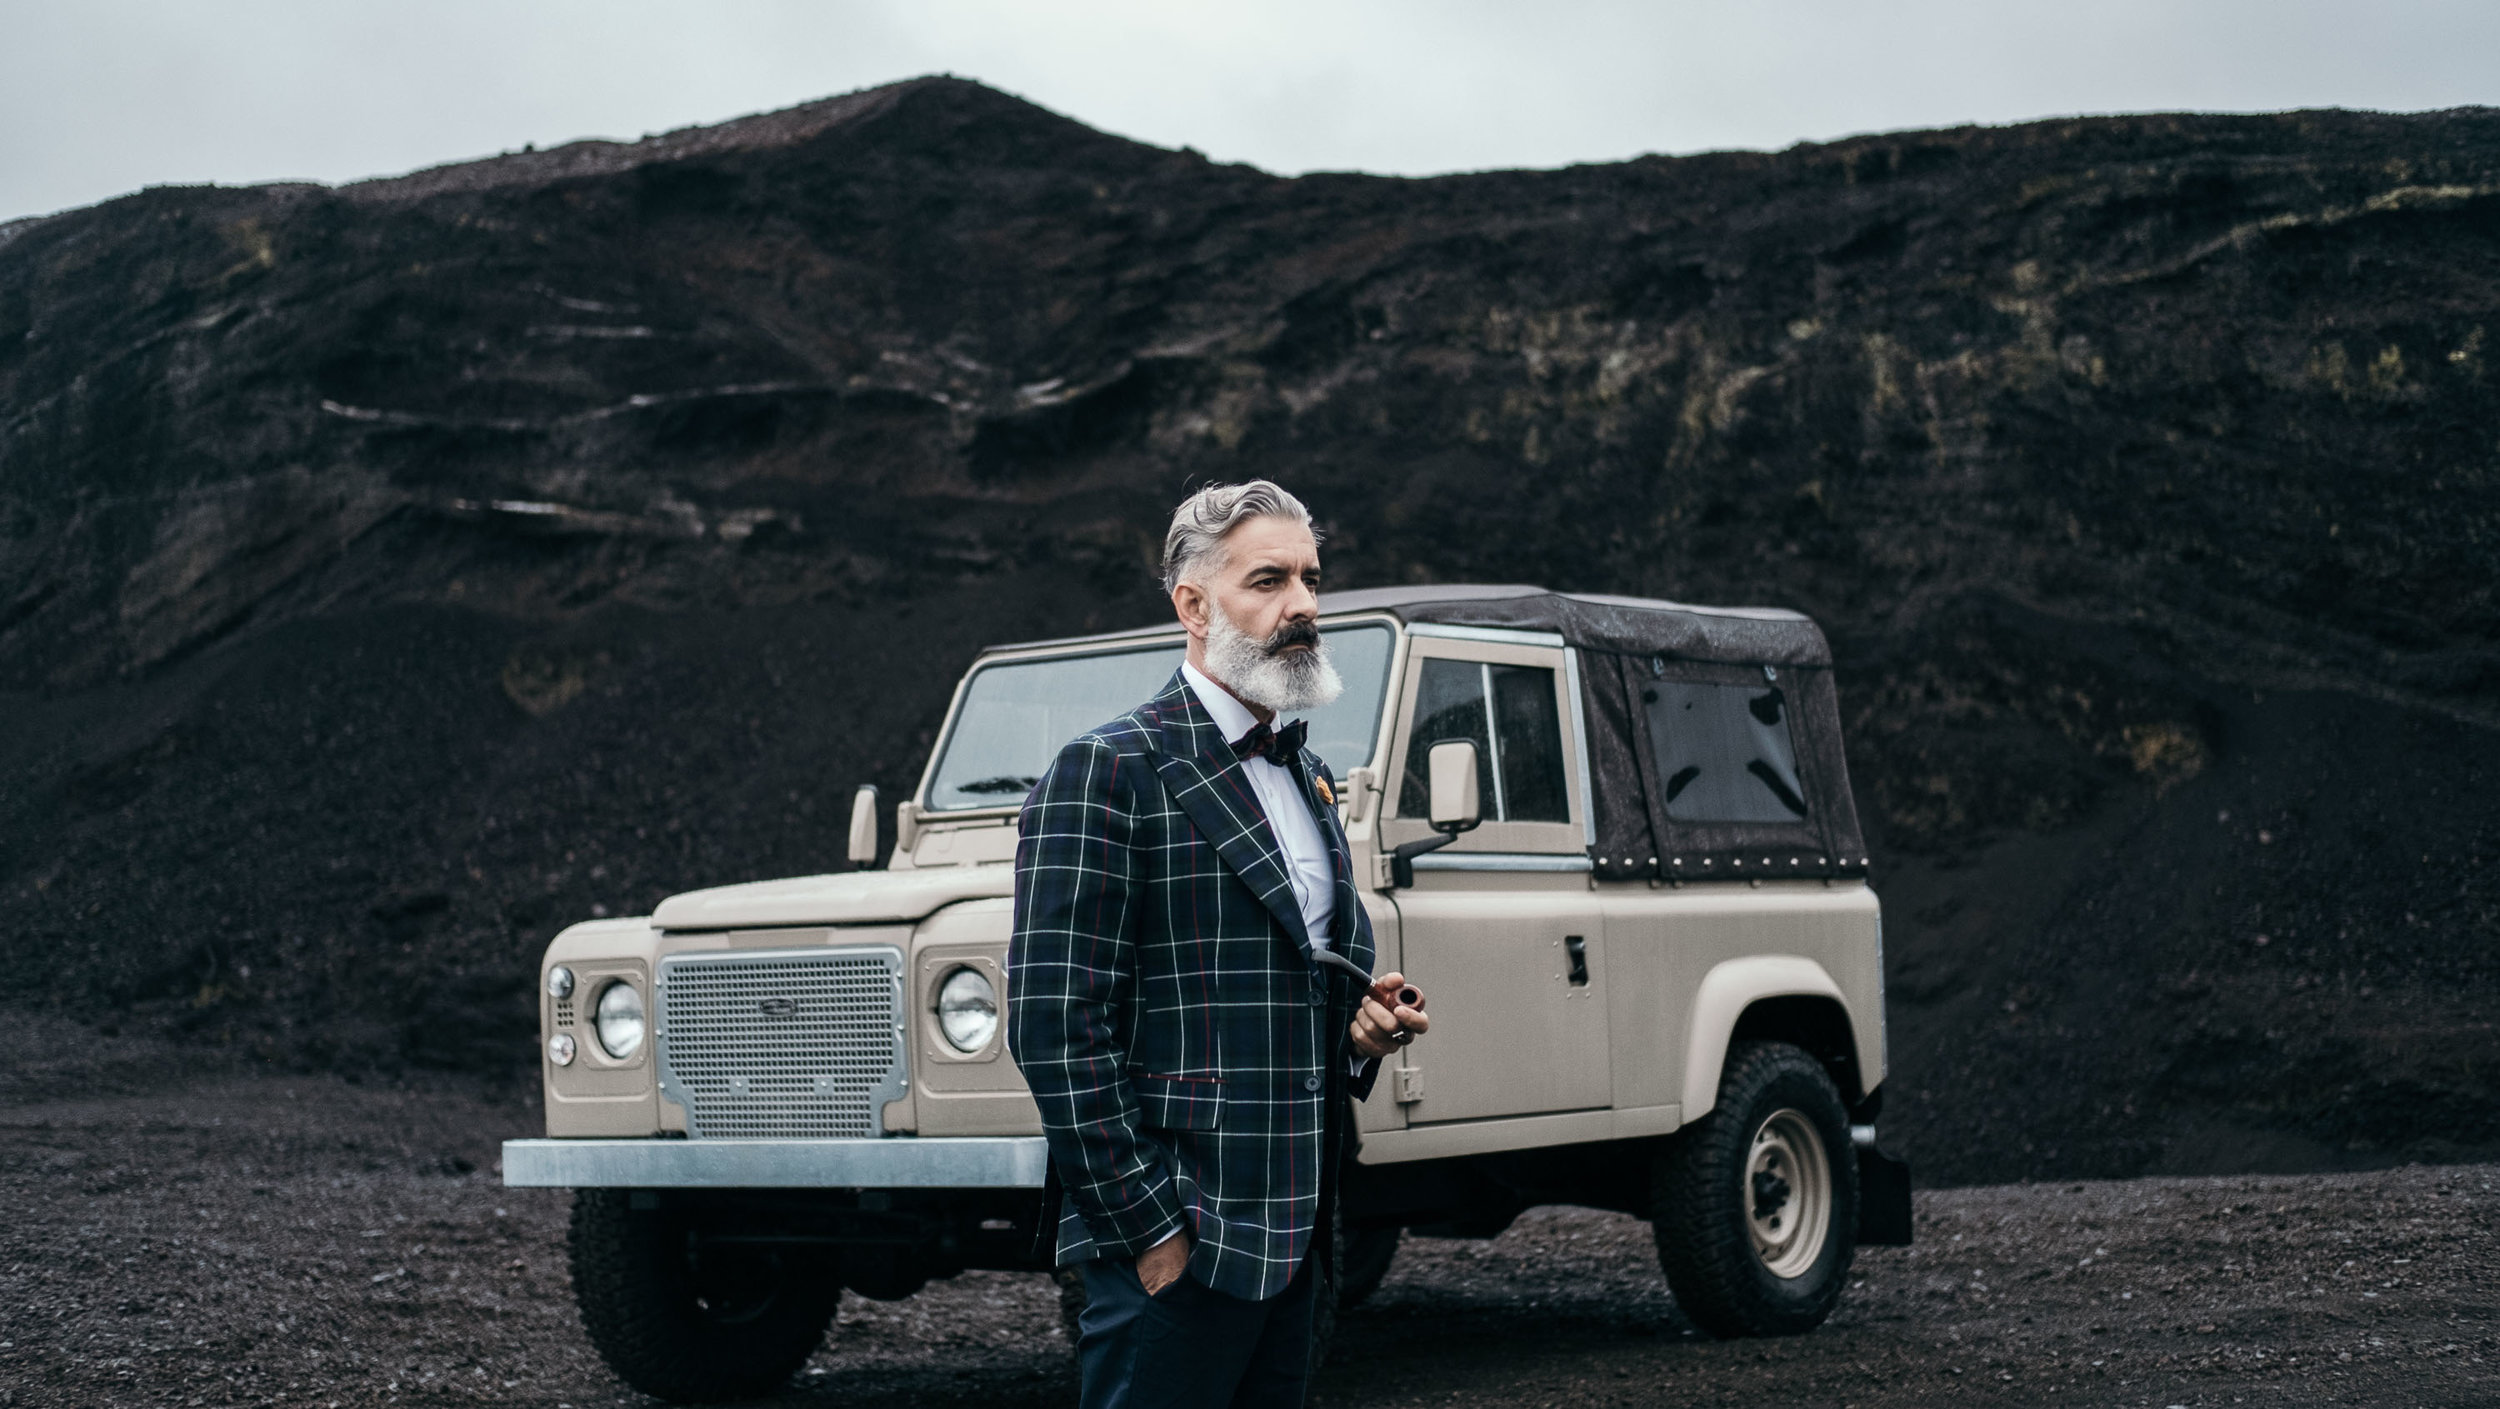 coolnvintage Land Rover Defender Dandy (36 of 41).jpg